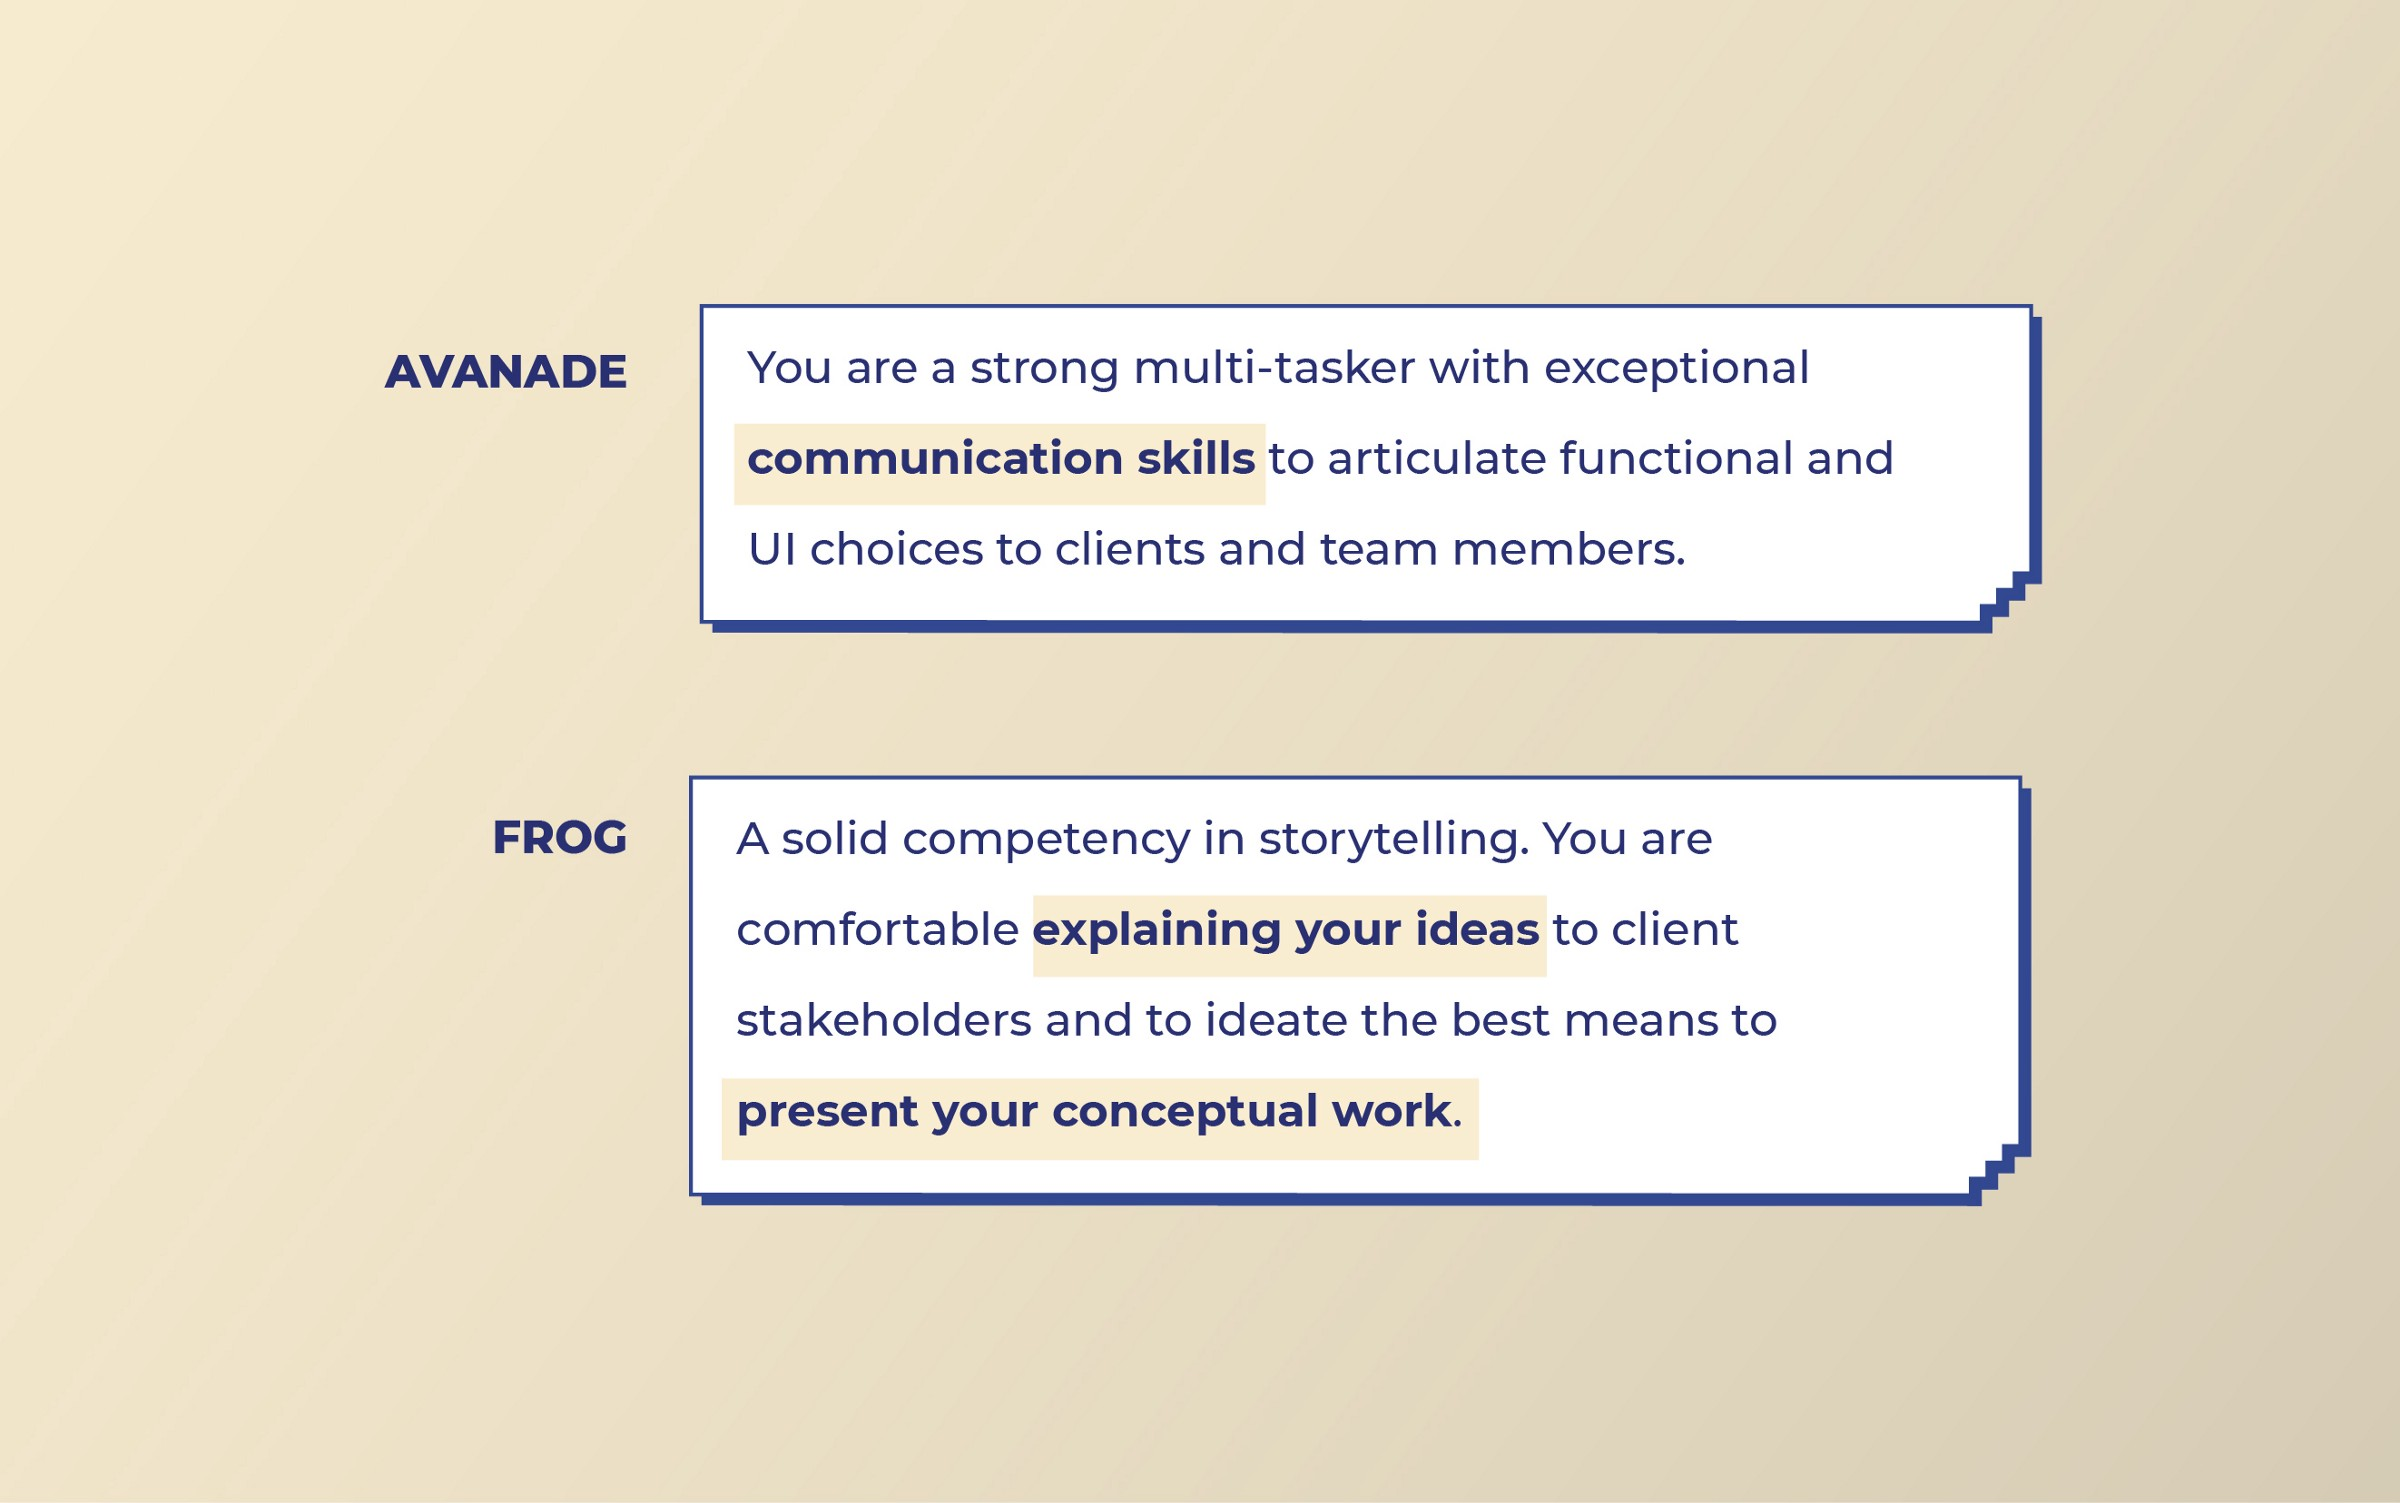 Avanade and Frog look for Communication skills from Visual designers